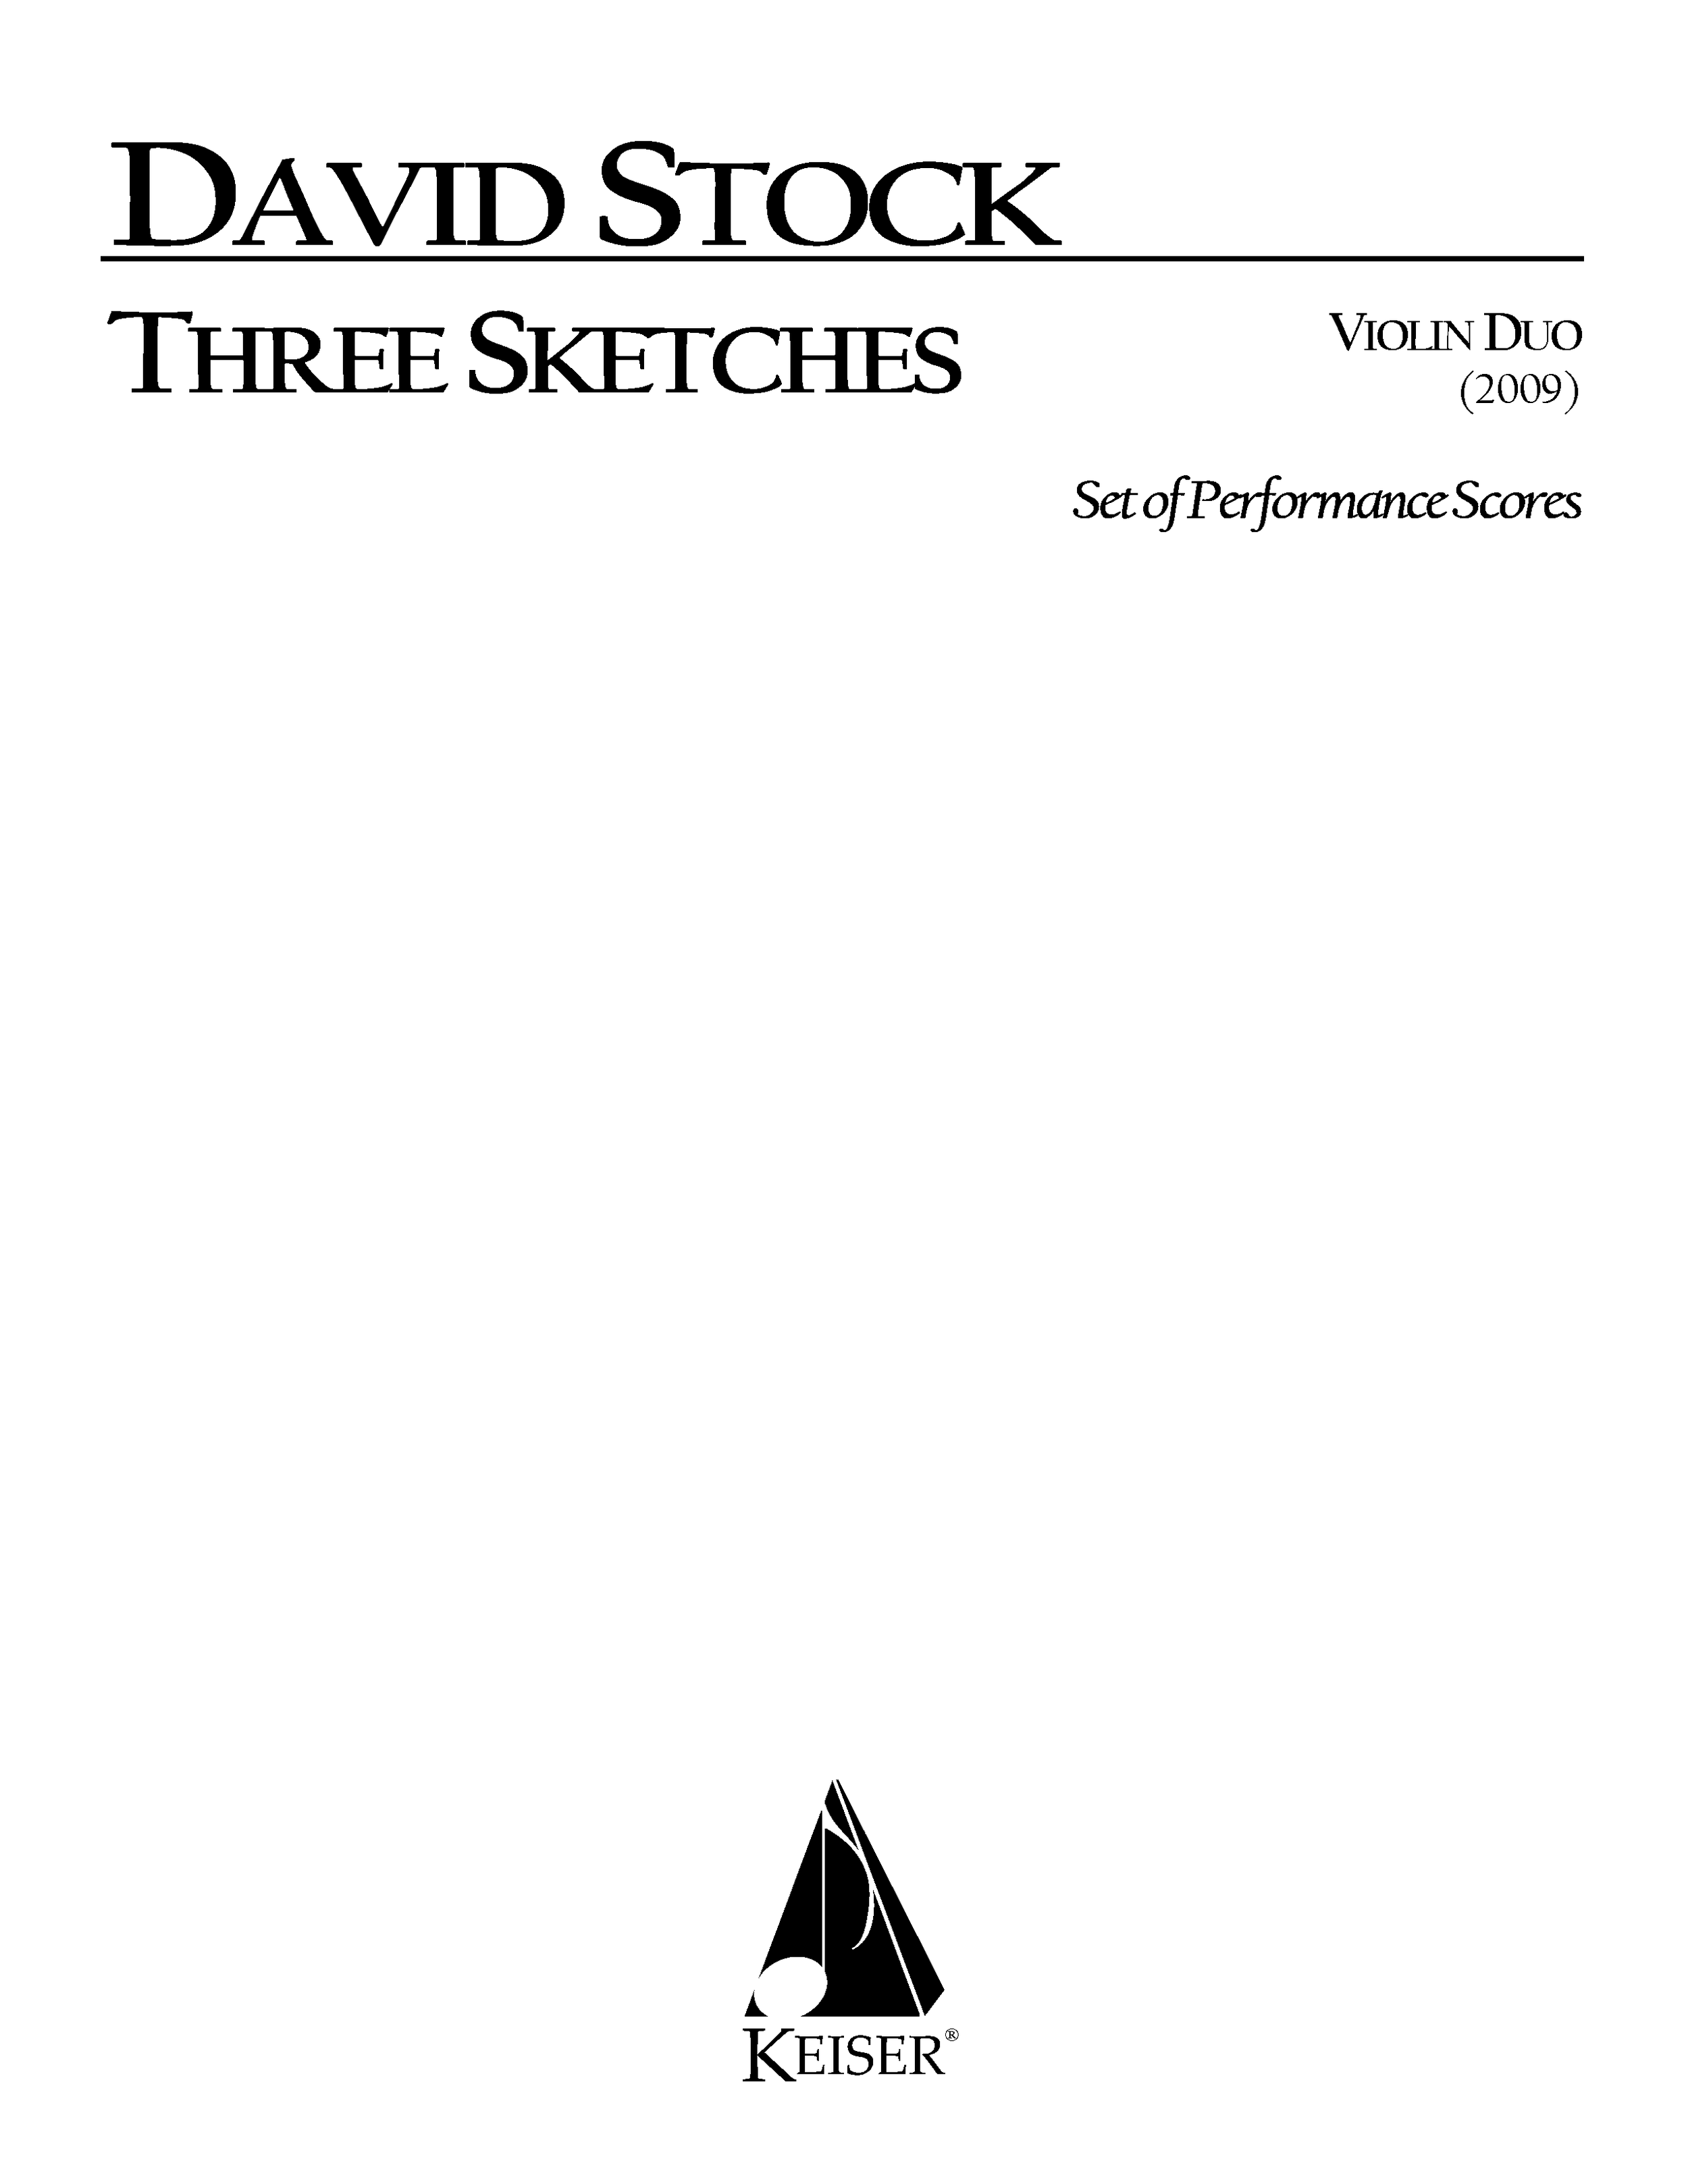 Three Sketches for Violin Duo (2009) - Violin DuoRent/Buy: Keiser Music